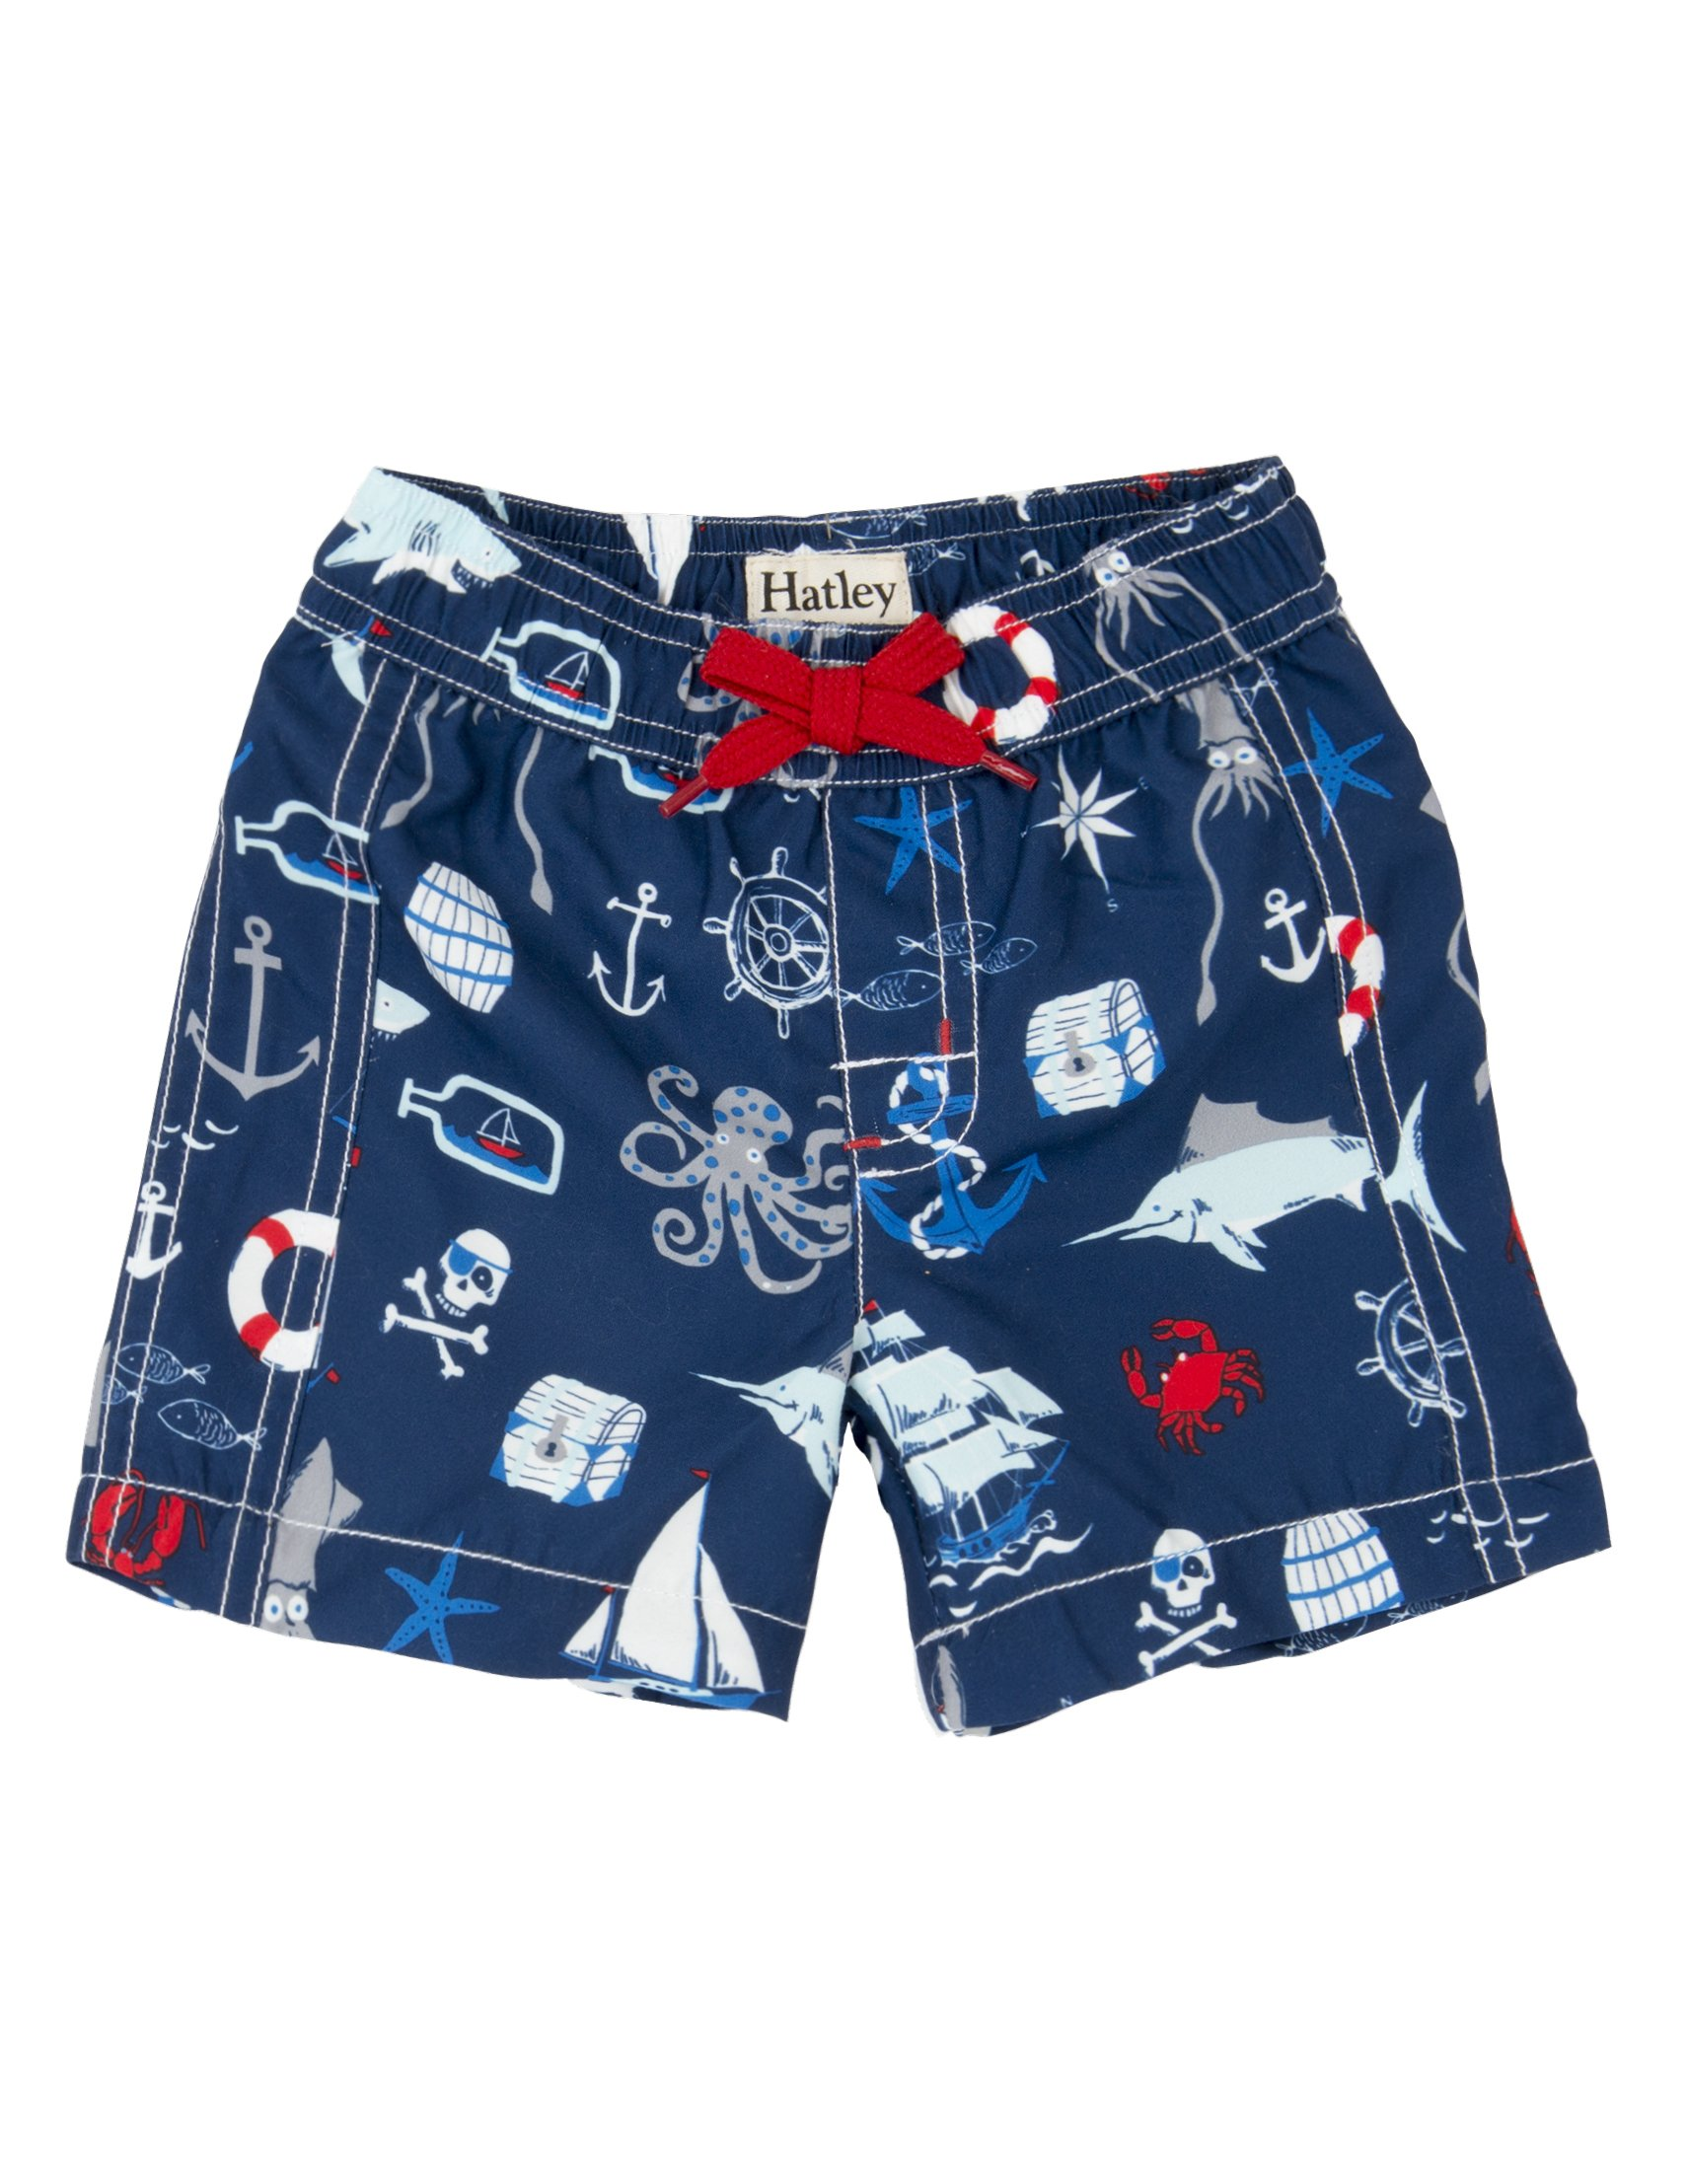 Hatley Boys' Baby Swim Trunks, Vintage Nautical, 18-24M by Hatley